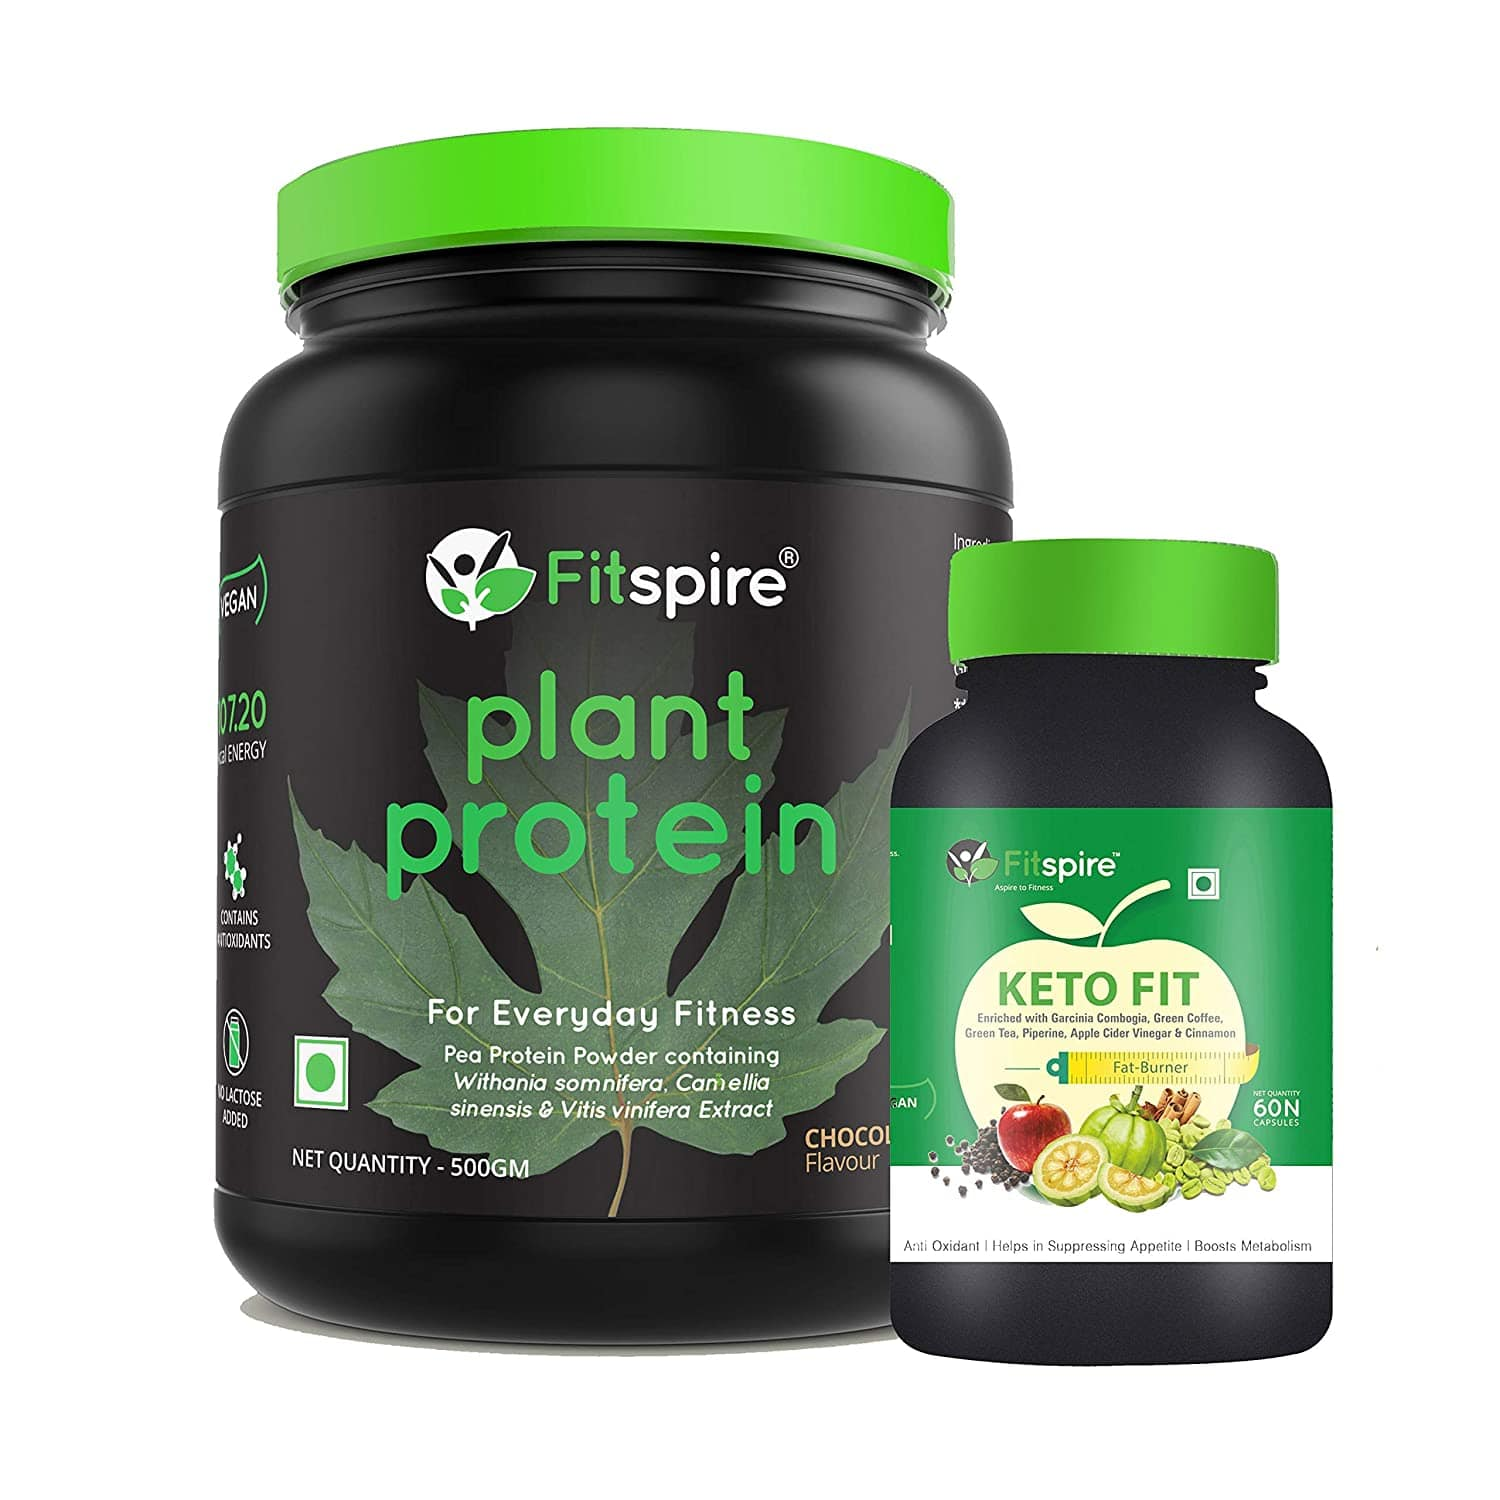 Fitspire Vegan Plant Protein & Keto Fit Fat Burner Combo